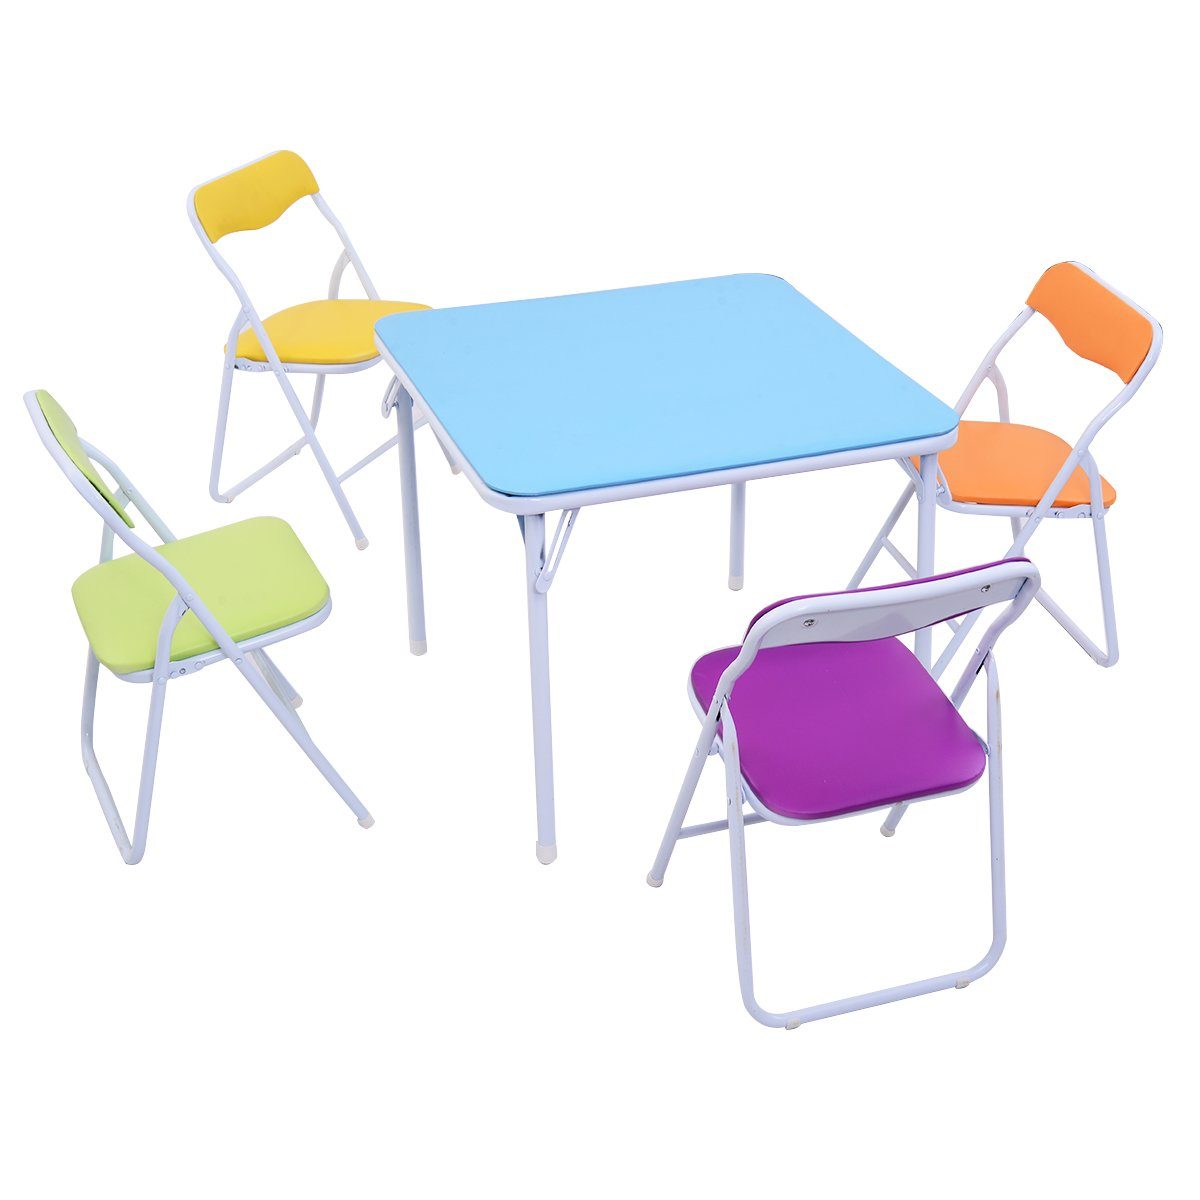 Amazon.com Costzon 5 Piece Kids Folding Table and Chair Set Activity Table Set Kitchen u0026 Dining  sc 1 st  Amazon.com & Amazon.com: Costzon 5 Piece Kids Folding Table and Chair Set ...